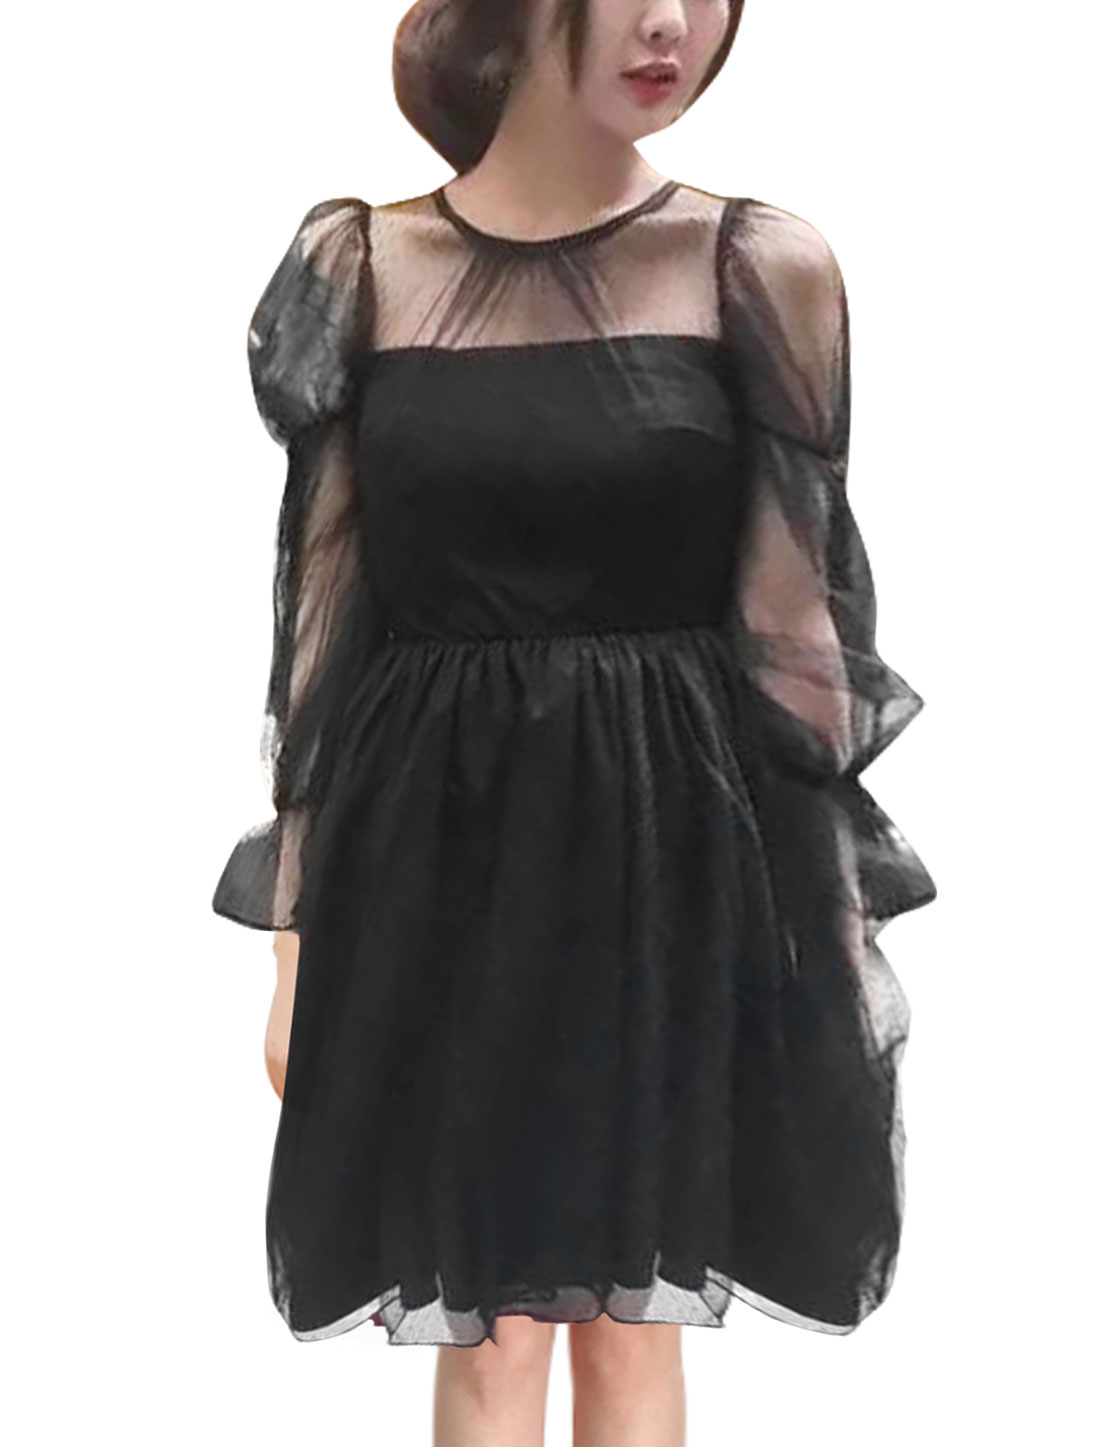 Women Semi Sheer Yoke Mesh Layered Mini A Line Dress Black S